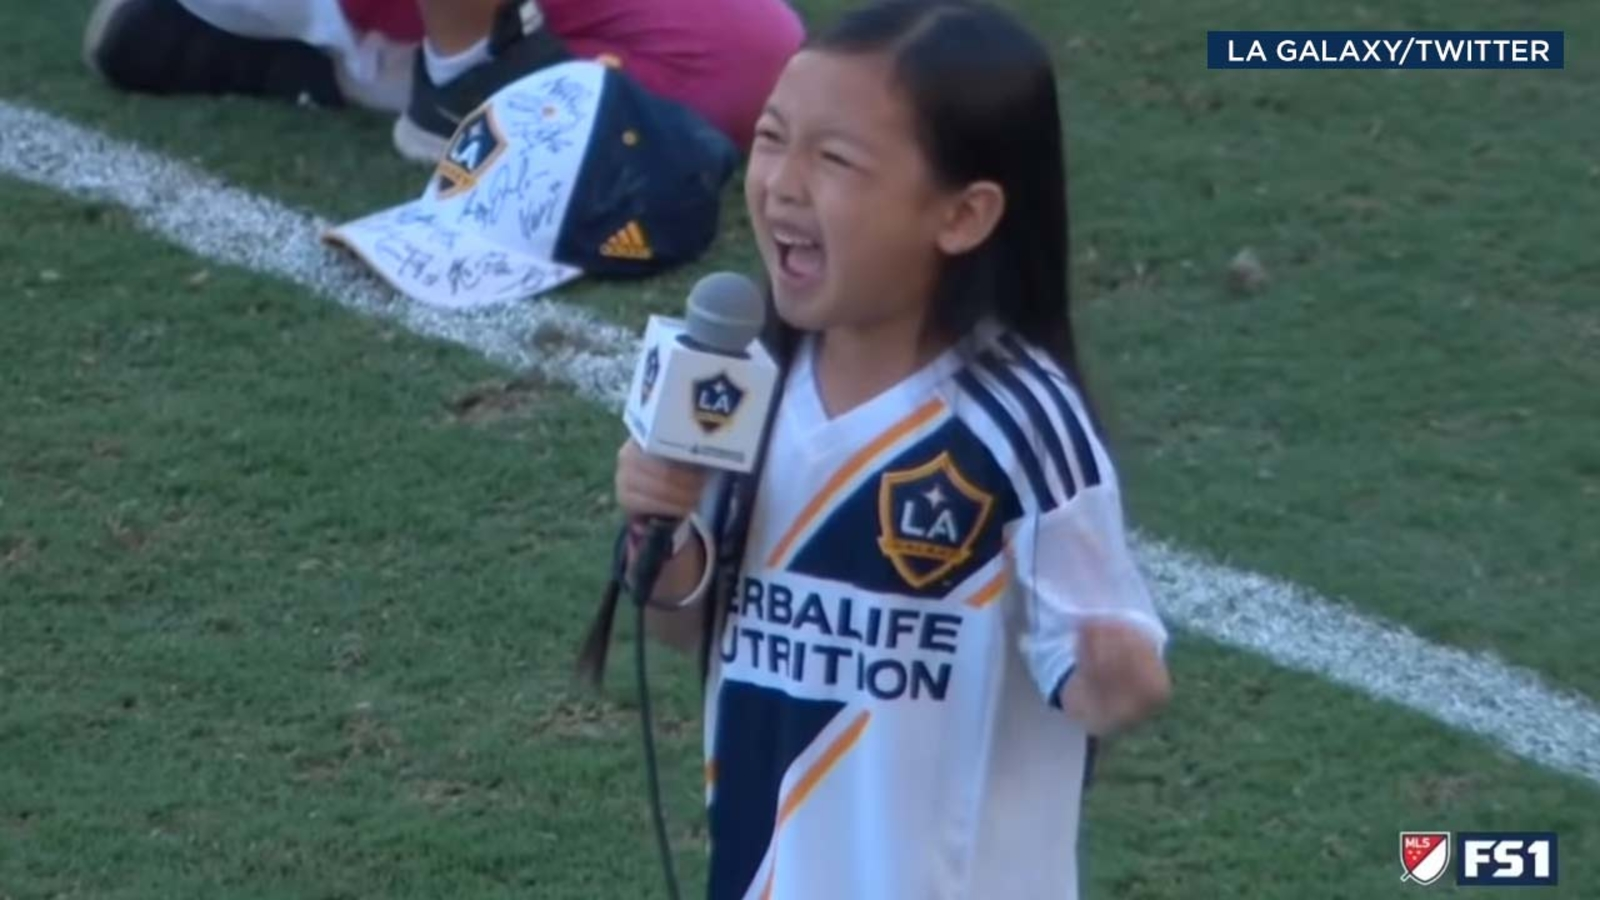 VIDEO: 7-year-old crushes national anthem at LA Galaxy game